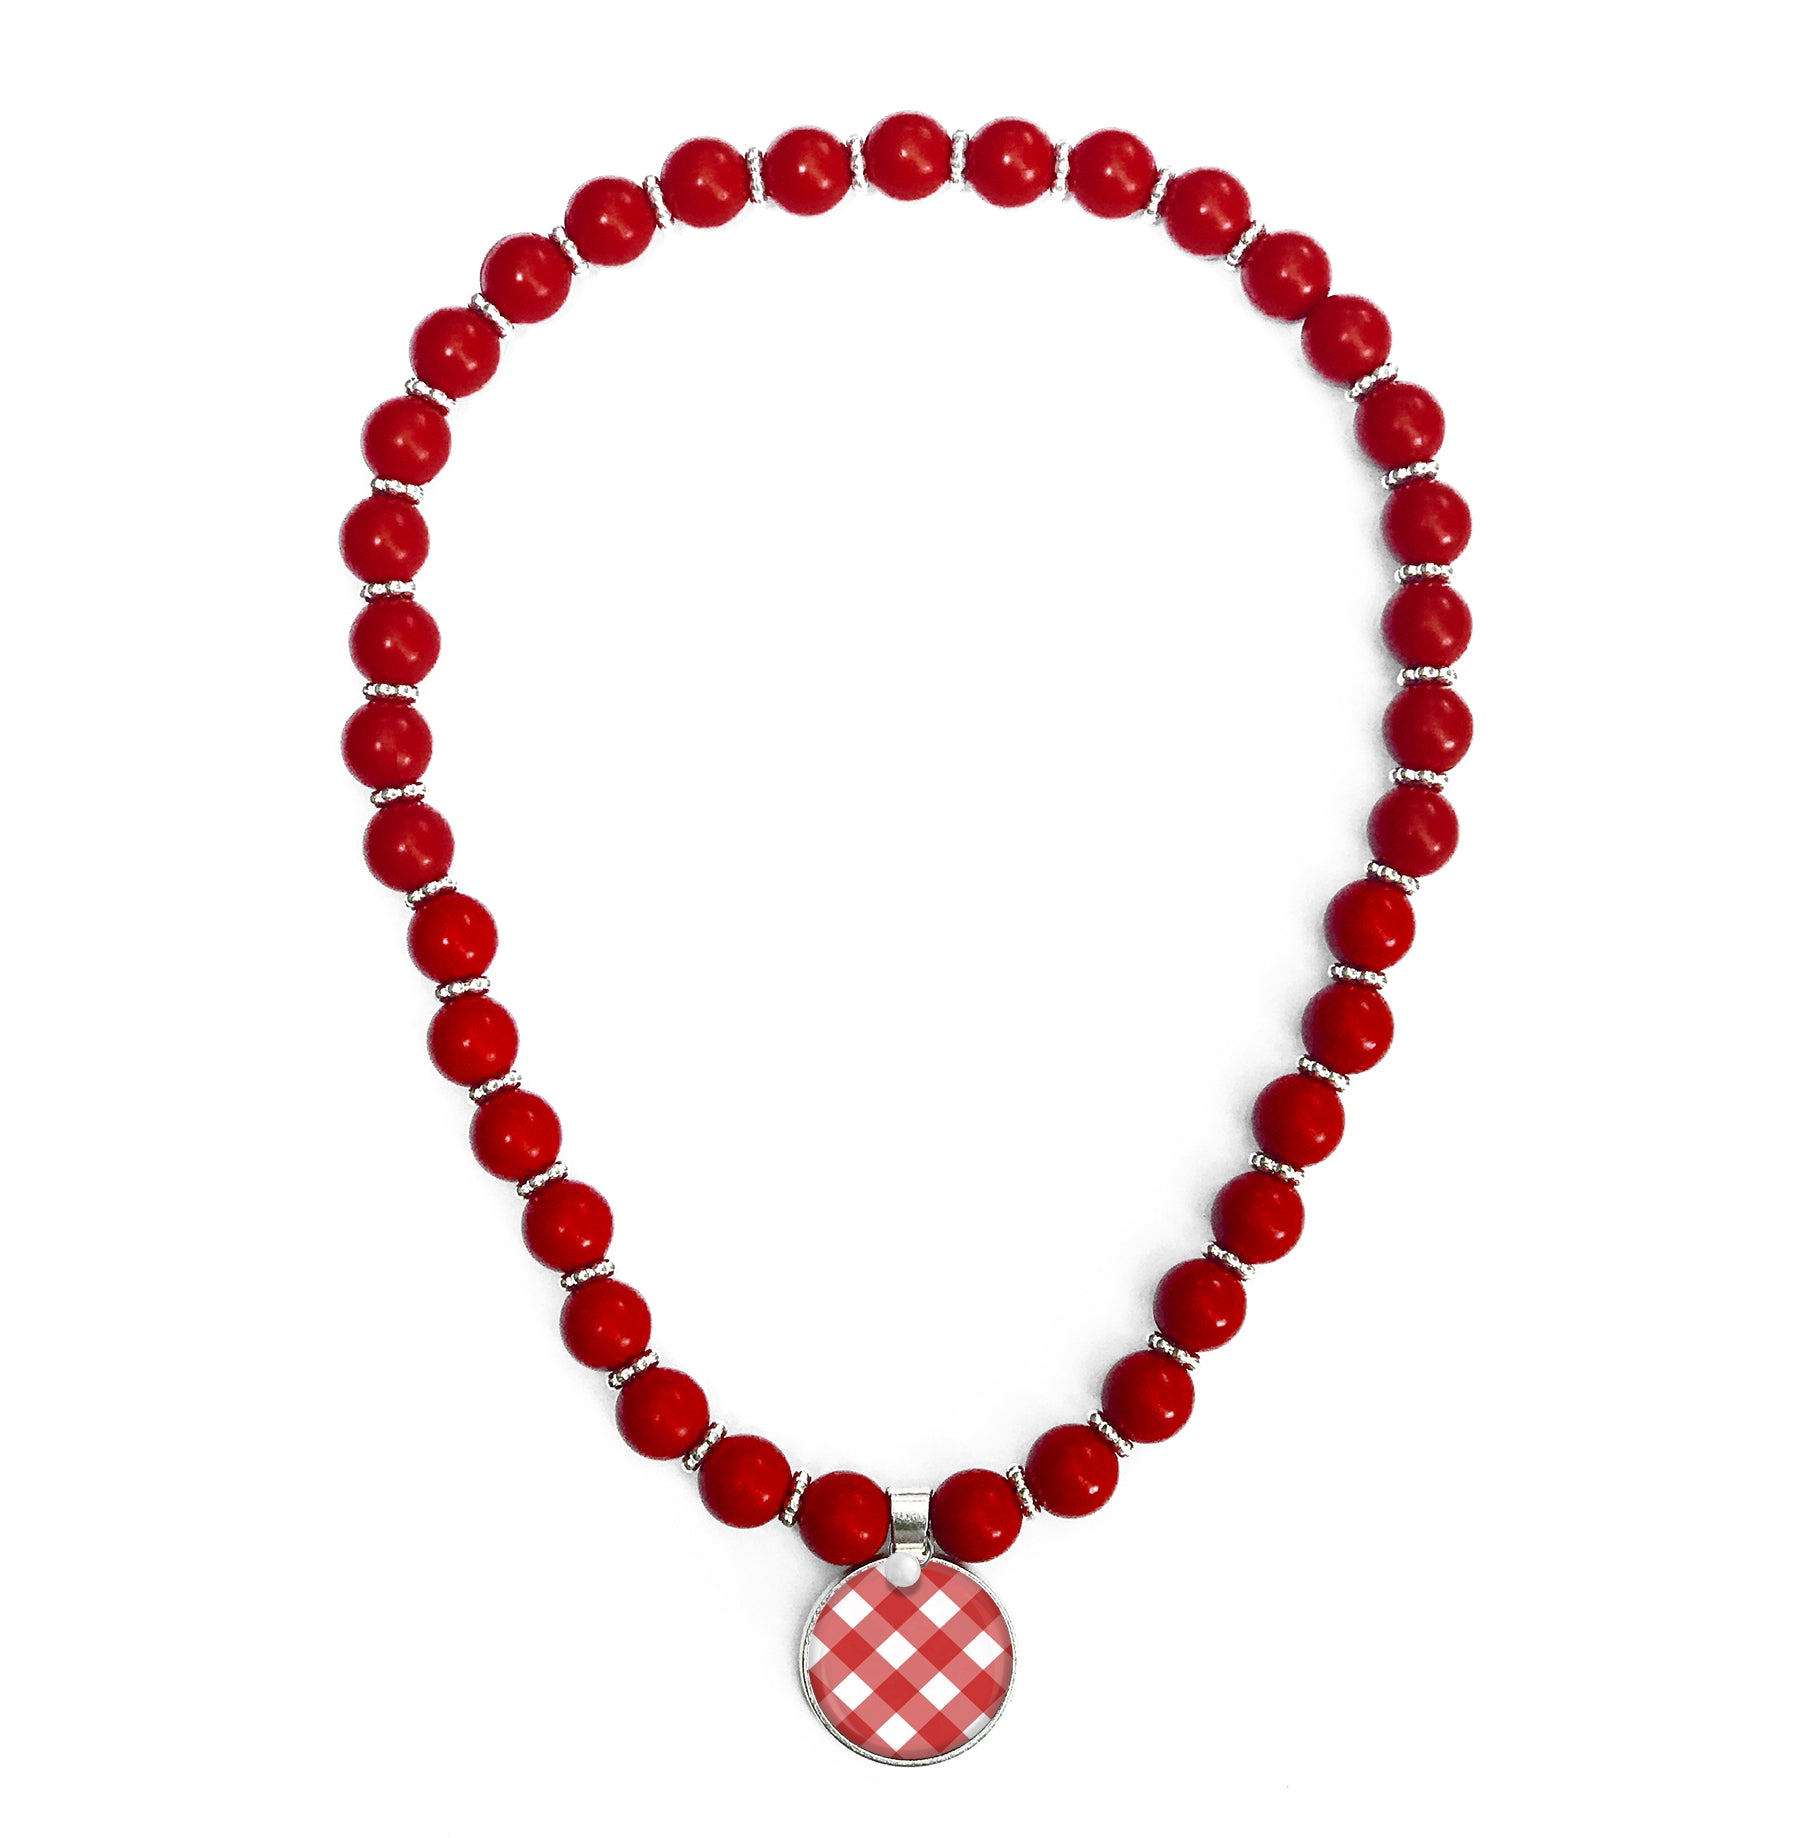 Gingham Red Beaded Necklace